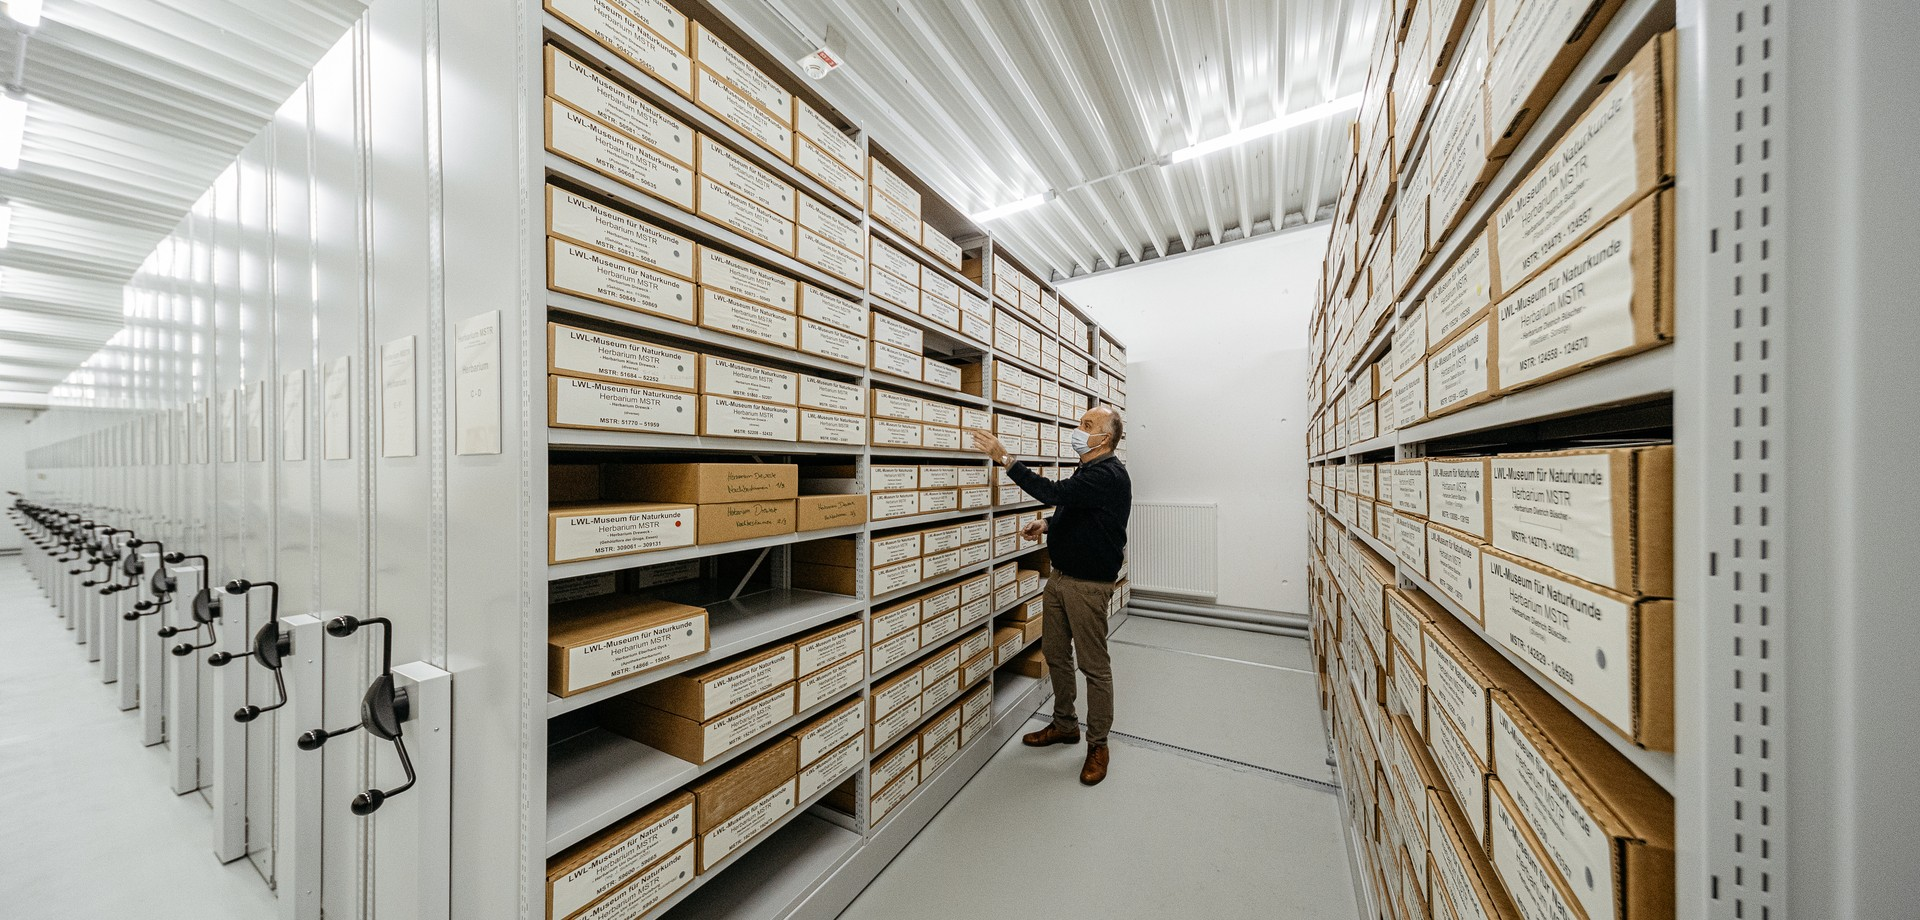 The herbarium on the large Compactus shelves in the central store of the the LWL-Museum of Natural History.